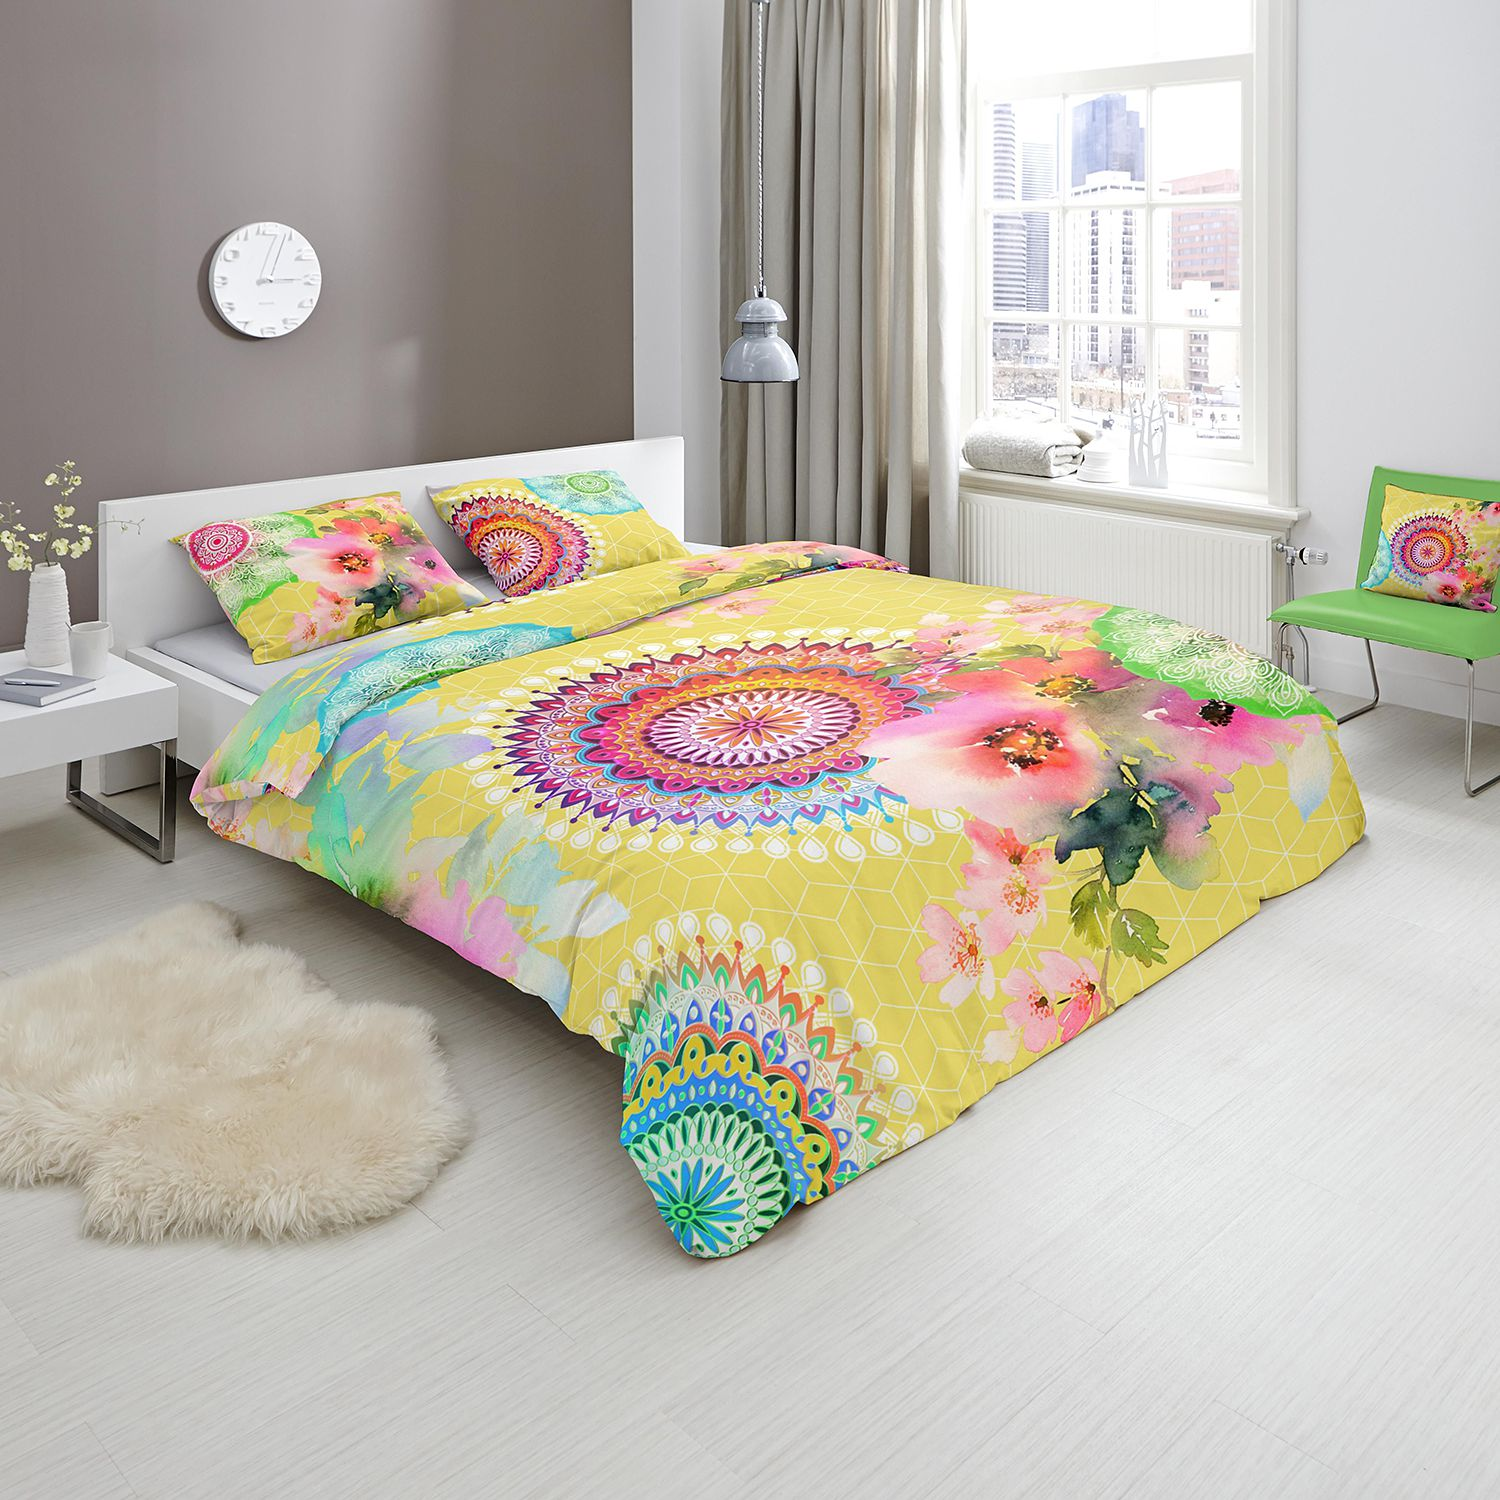 home24 Mako-Satin-Bettwaesche Chanelle